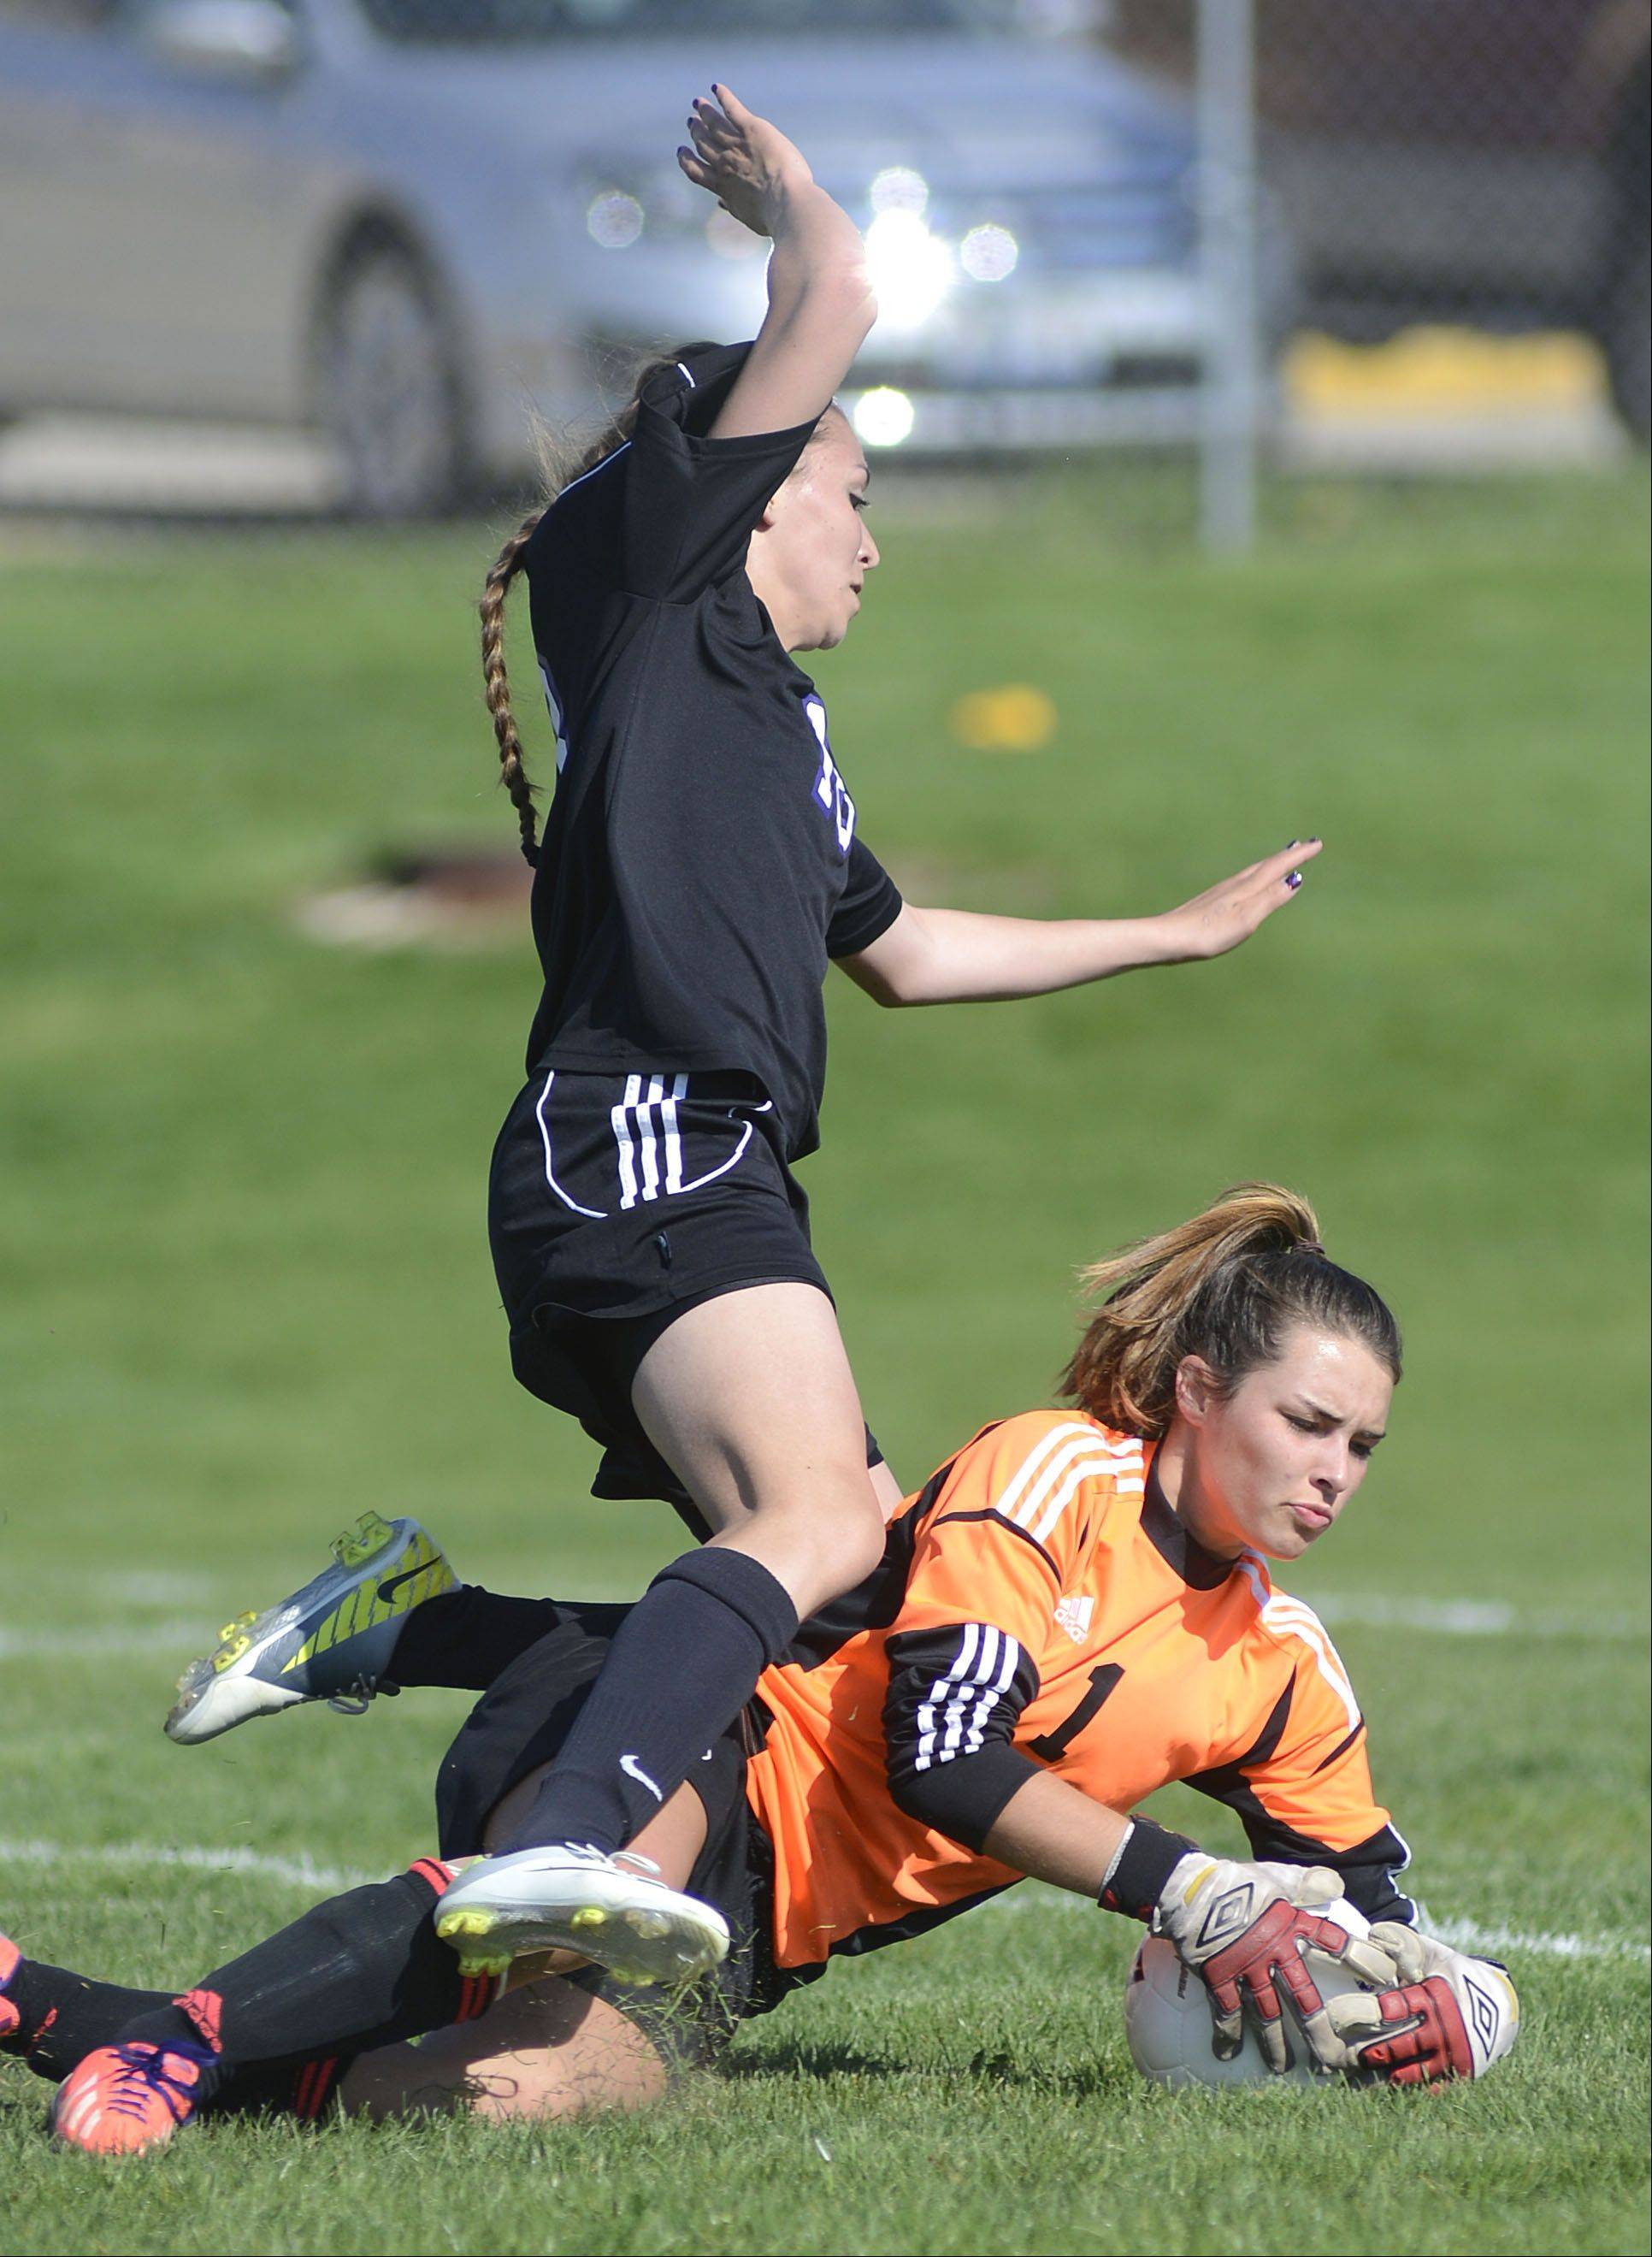 Hampshire's Alexis Maze, top, collides with Burlington Central goalie Taylor Martin during Tuesday's Class 2A regional semifinal.